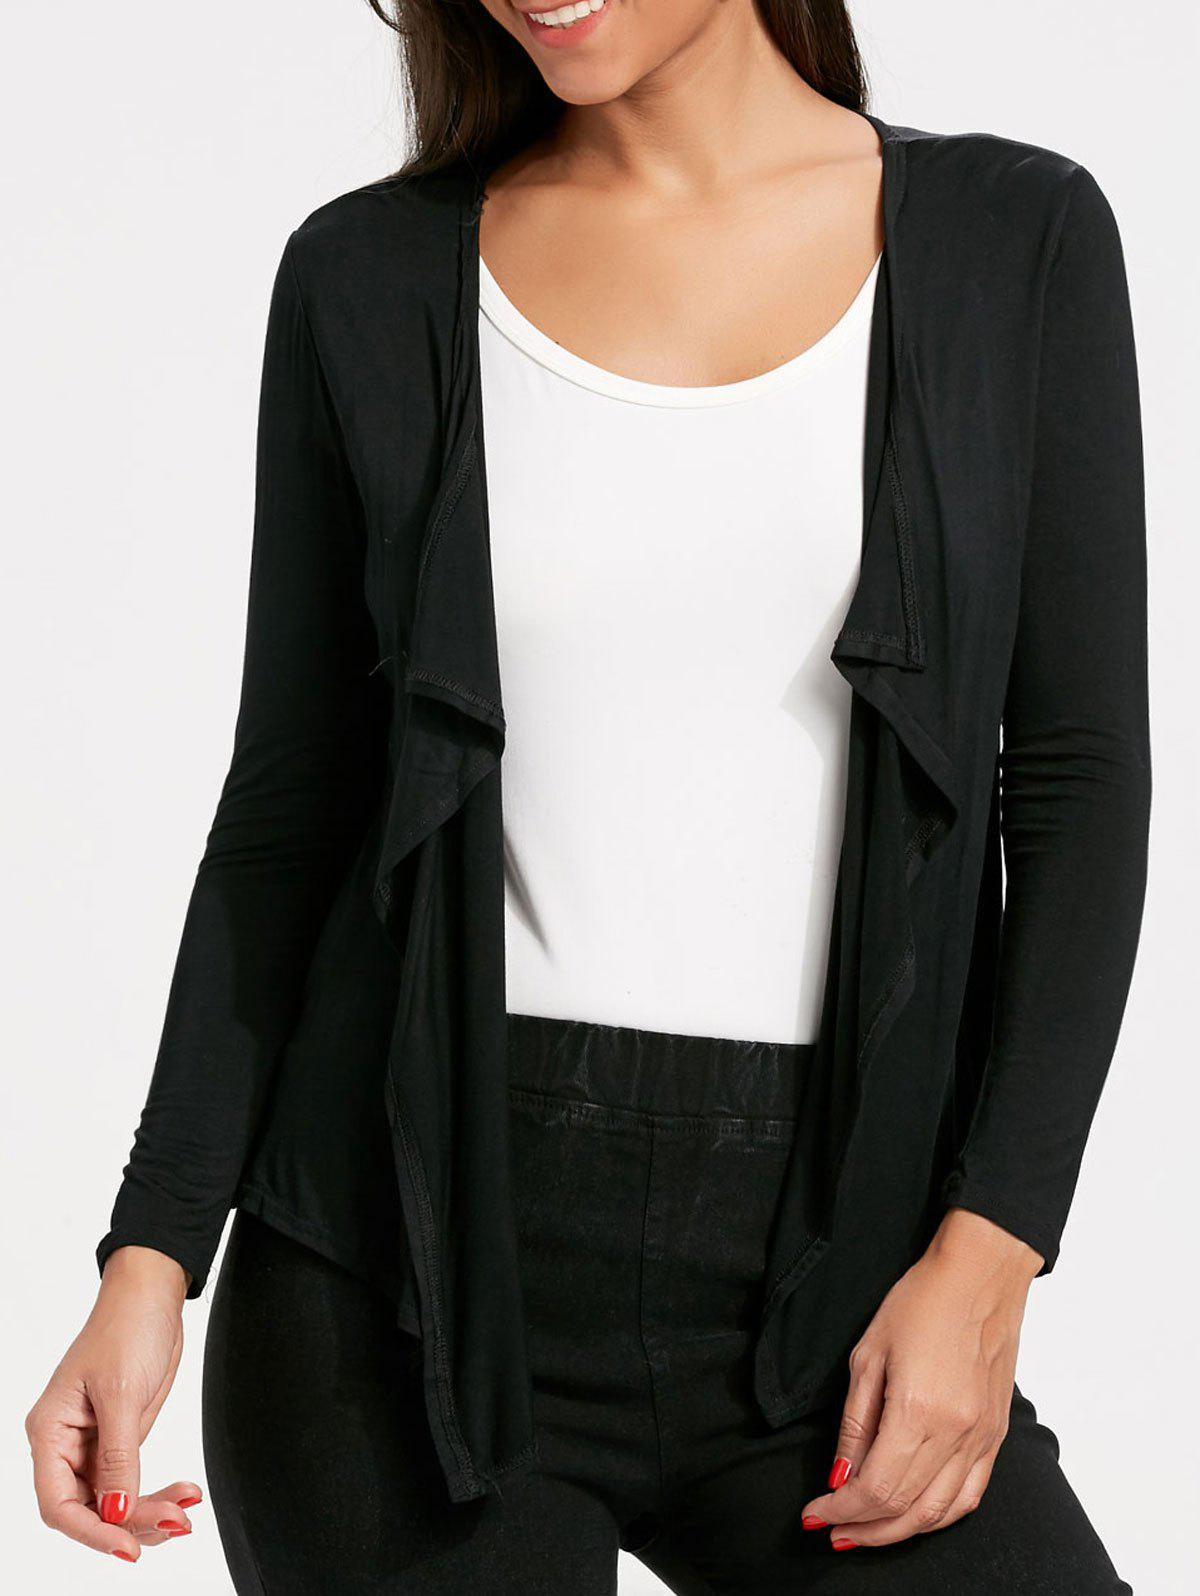 front a outfit winter how cardigan draped blanketcardigan open ideas drapes to wear drape